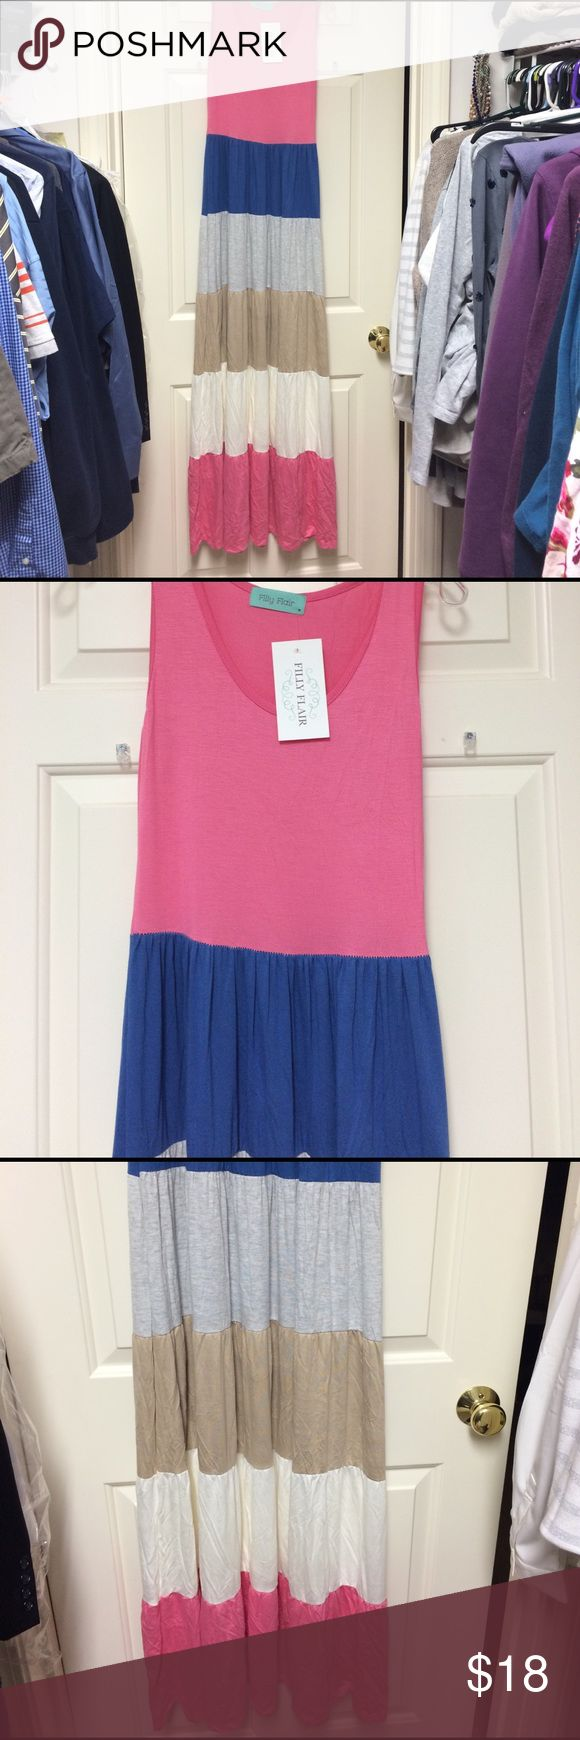 NWT! Filly Flair Twirl Maxi Dress size M NWT! Long Filly Flair maxi dress. Super soft and perfect for summer. Women's size M. 6-8. Filly Flair Dresses Maxi